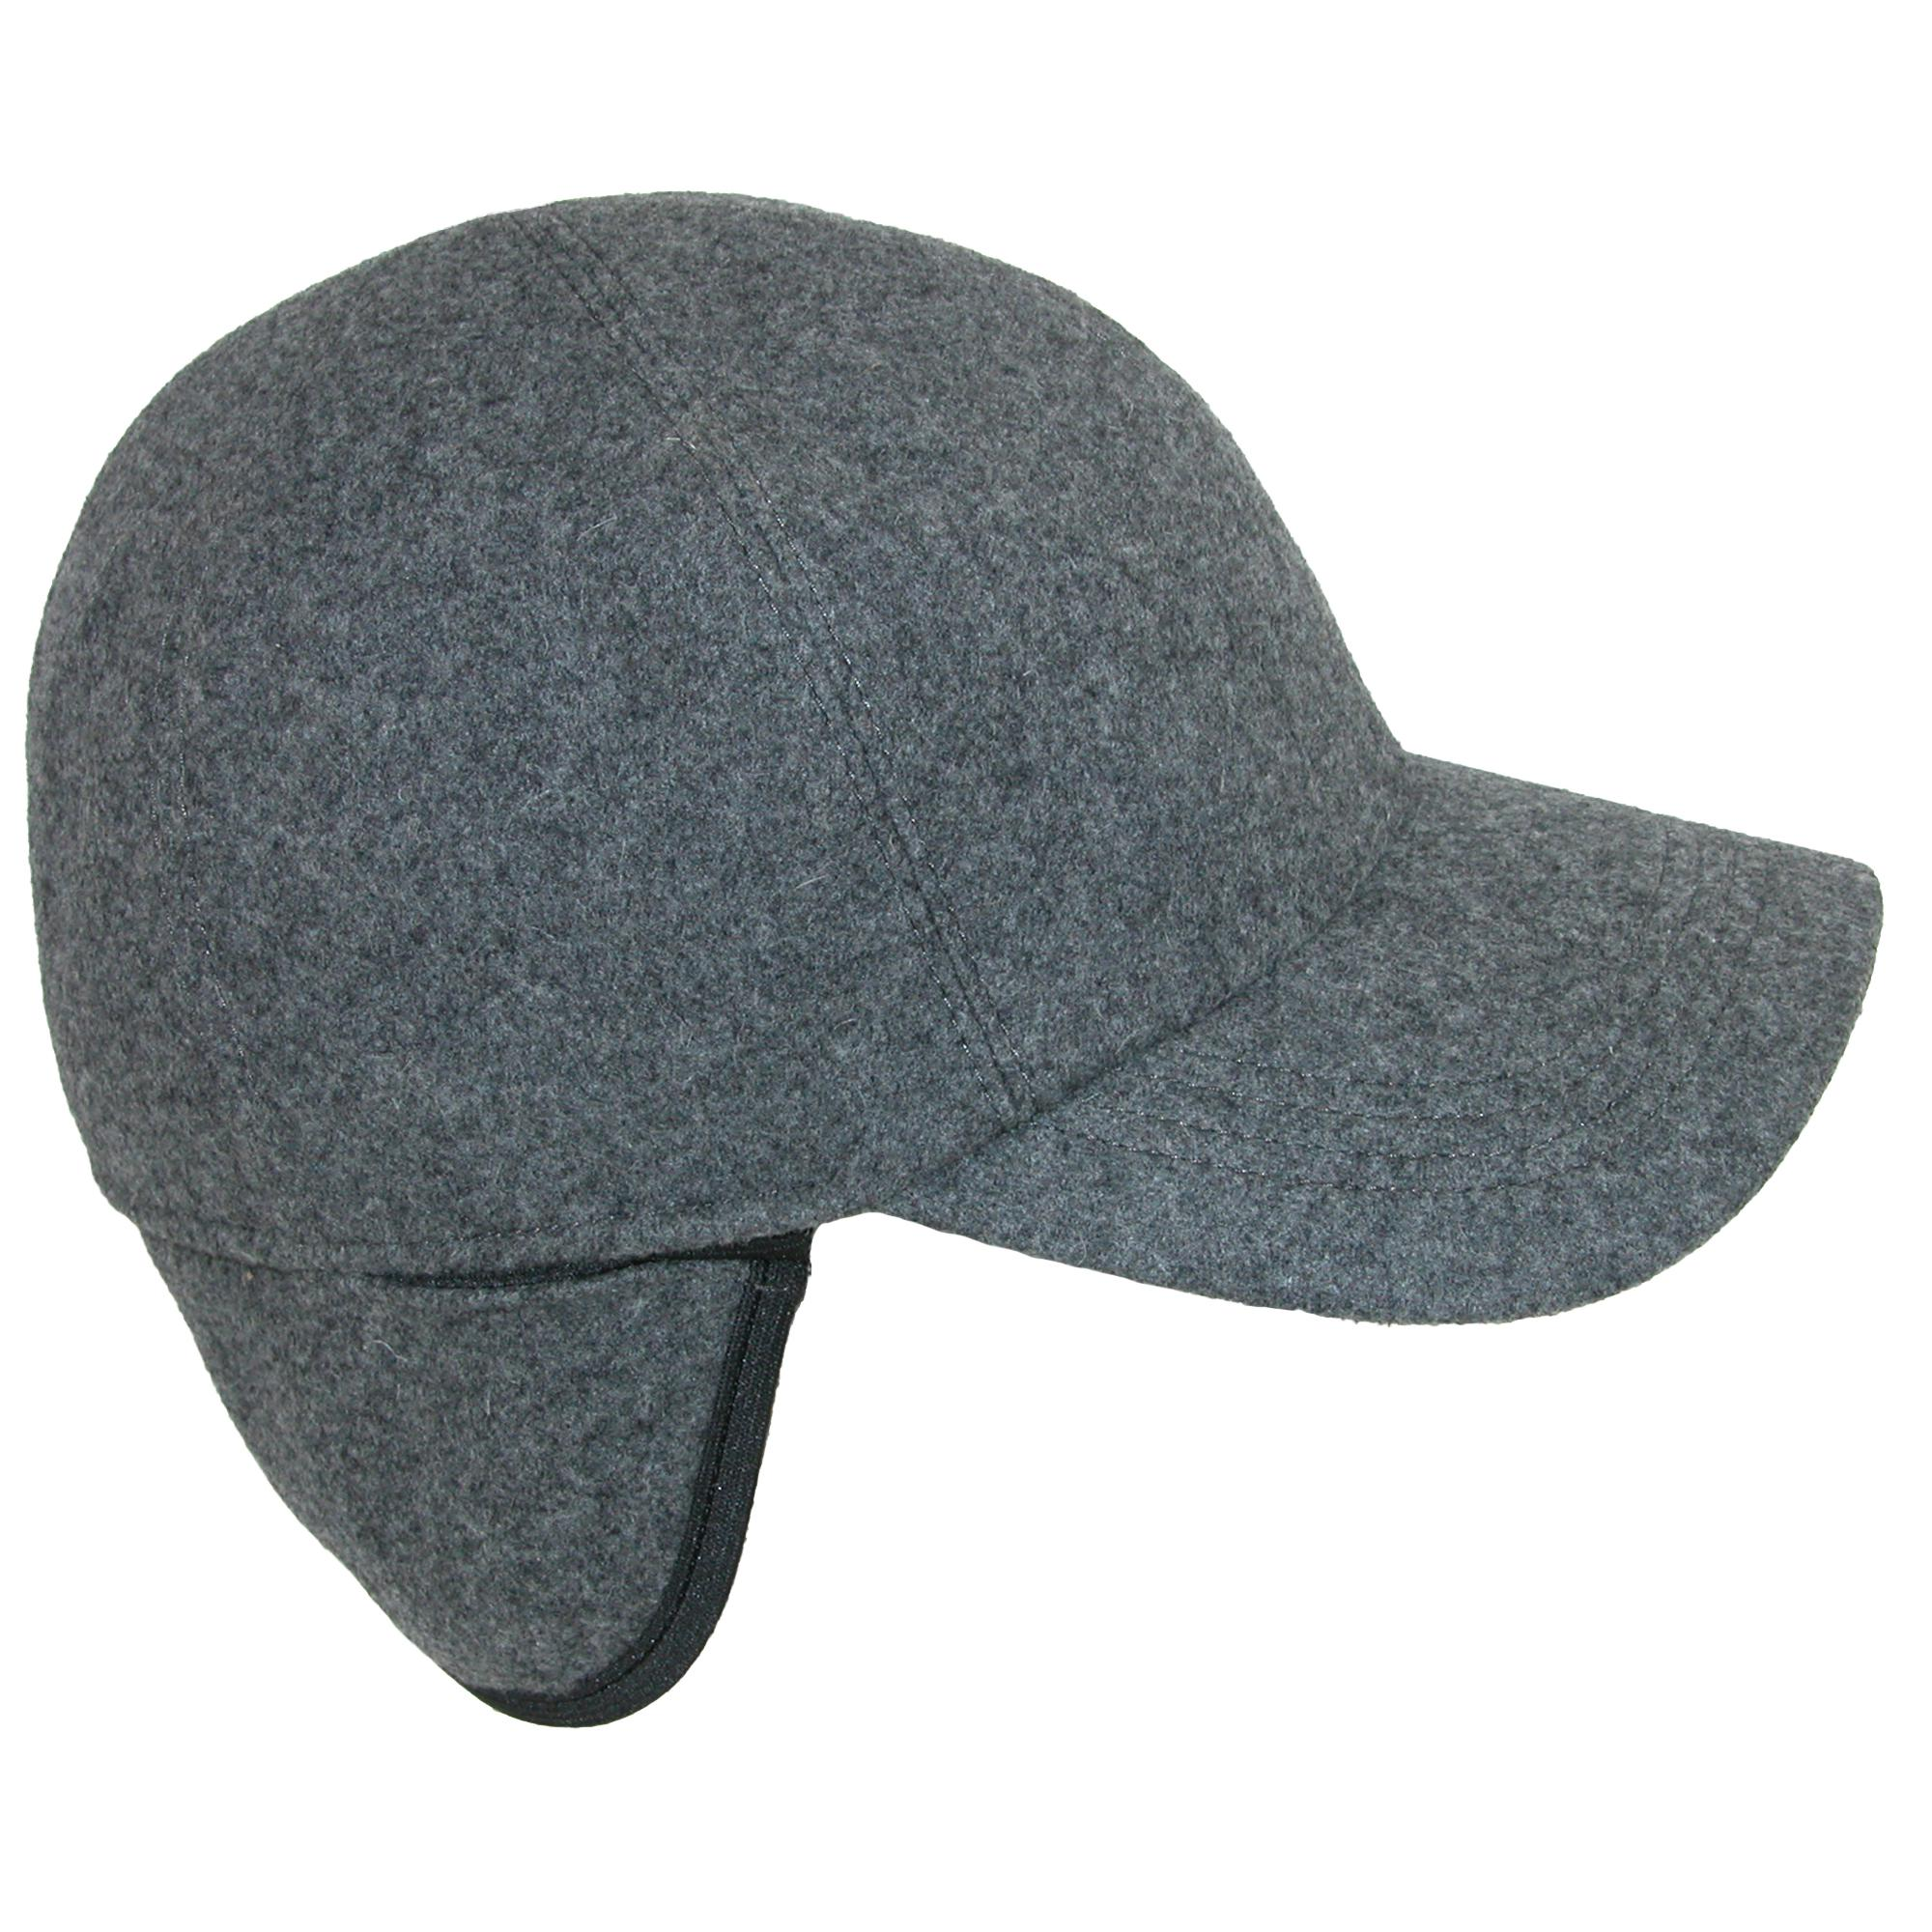 New Wigens Men s Wool Baseball Cap with Earflaps  c8788d96d17